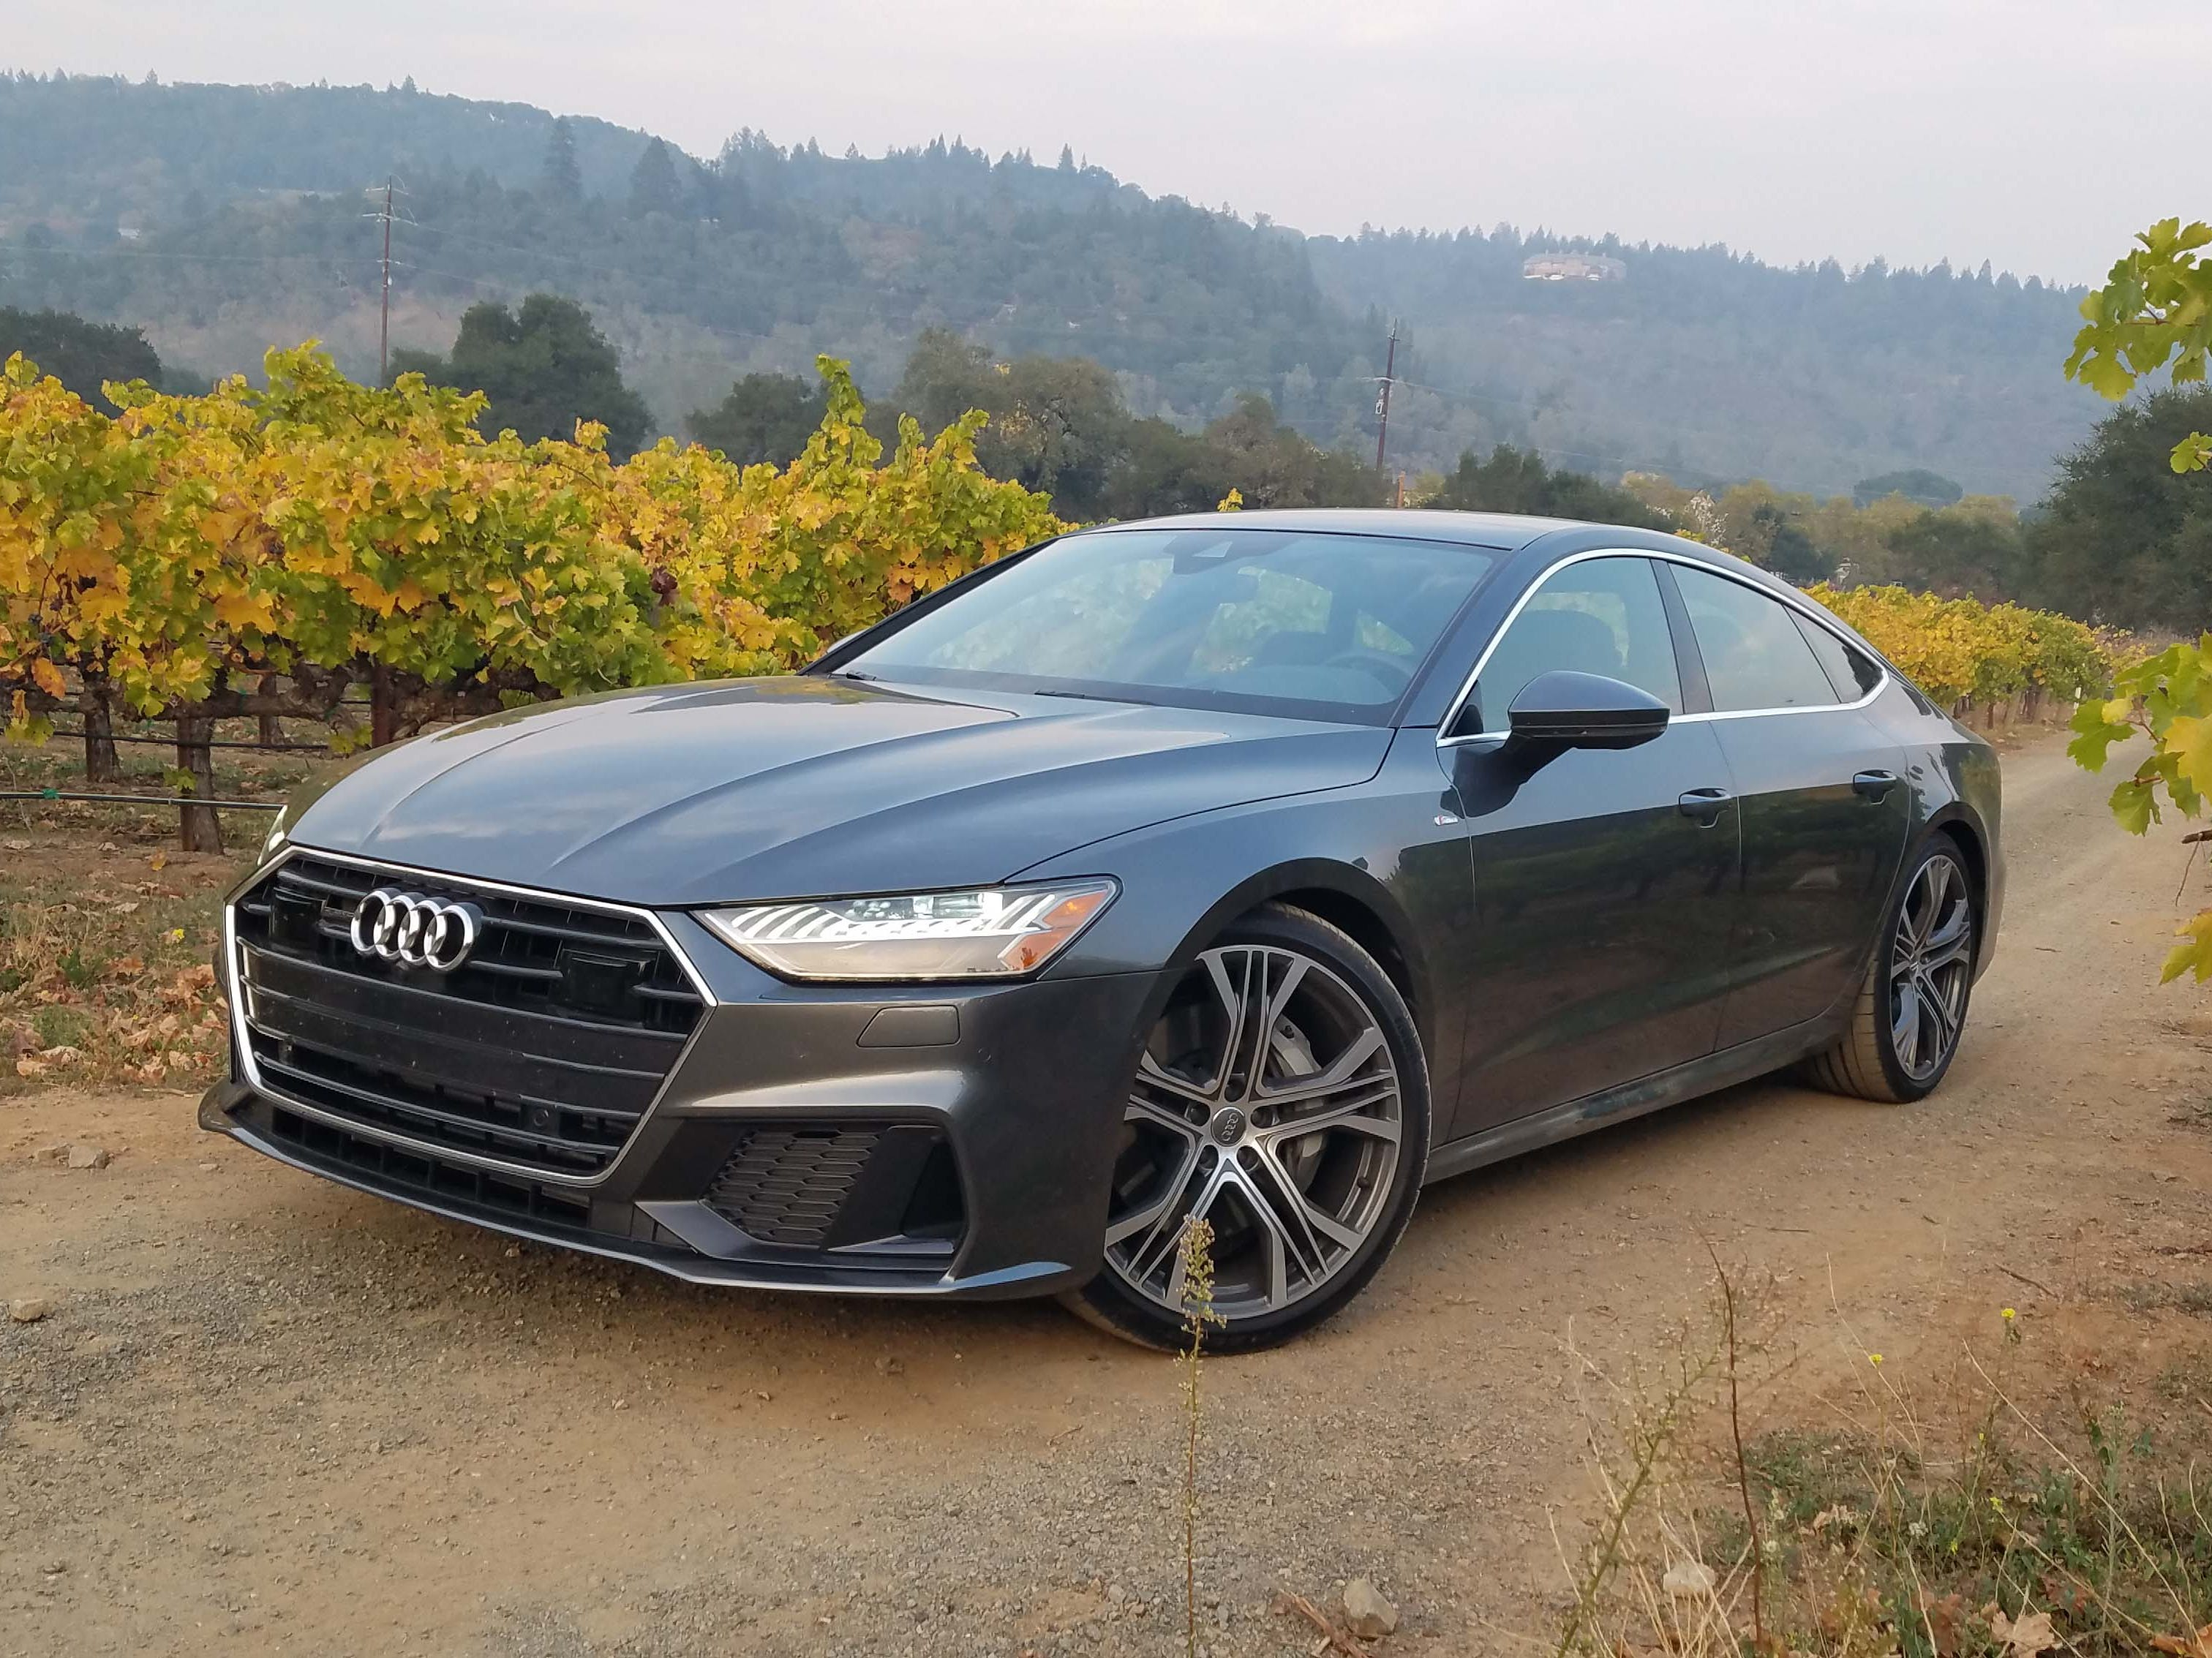 The 2019 Audi A7 shares the bones and engine of sibling Audi A6, but gets its own sheet metal and an $8,000 price tag increase.